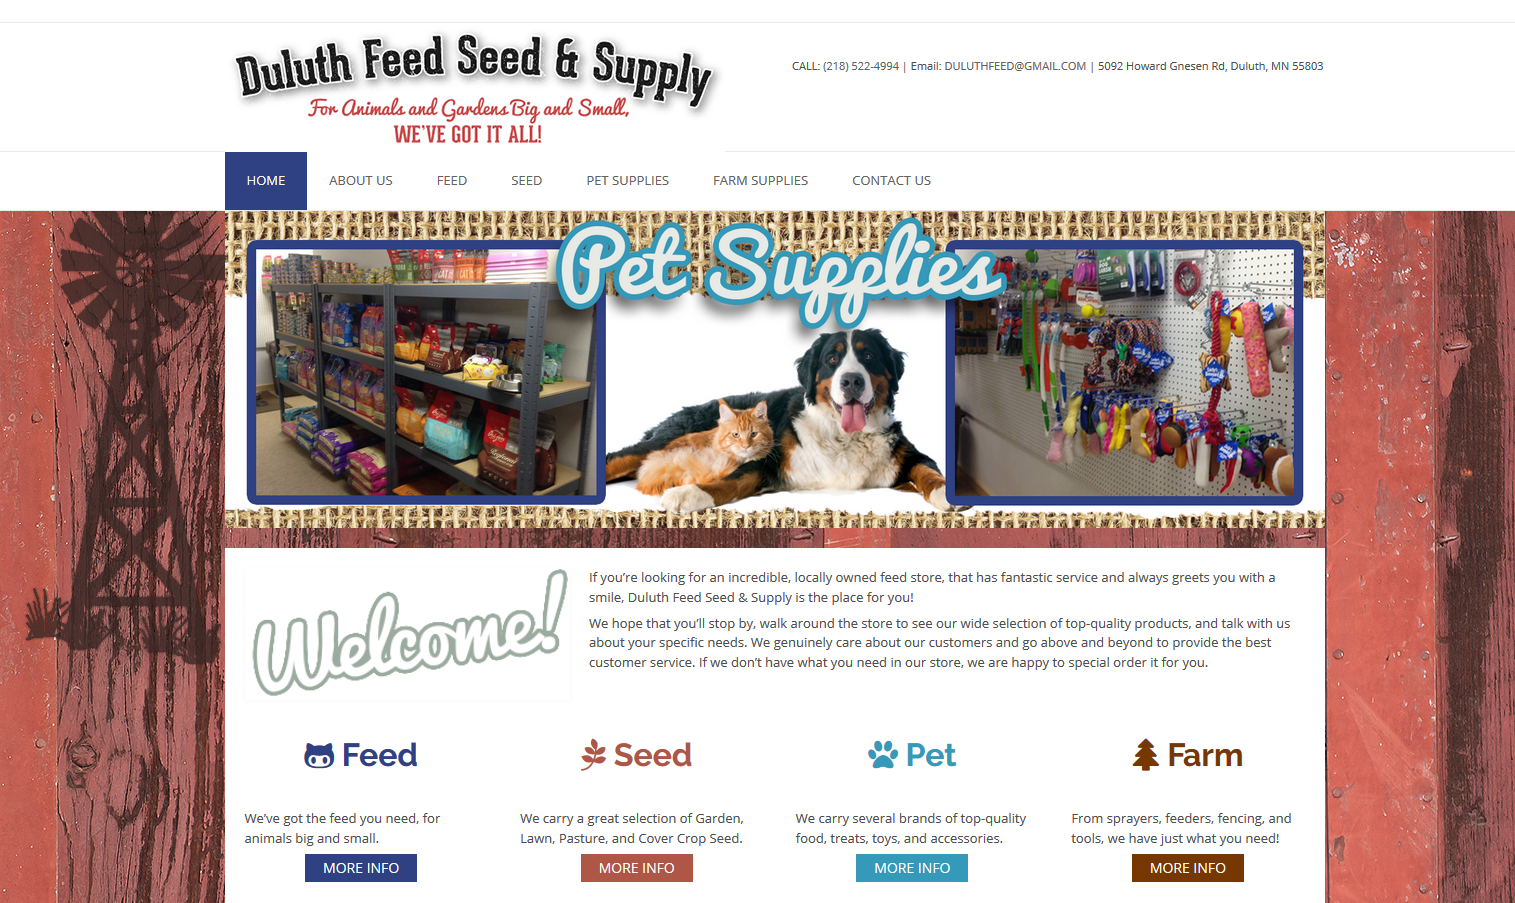 Duluth Feed Seed and Supply Home Page